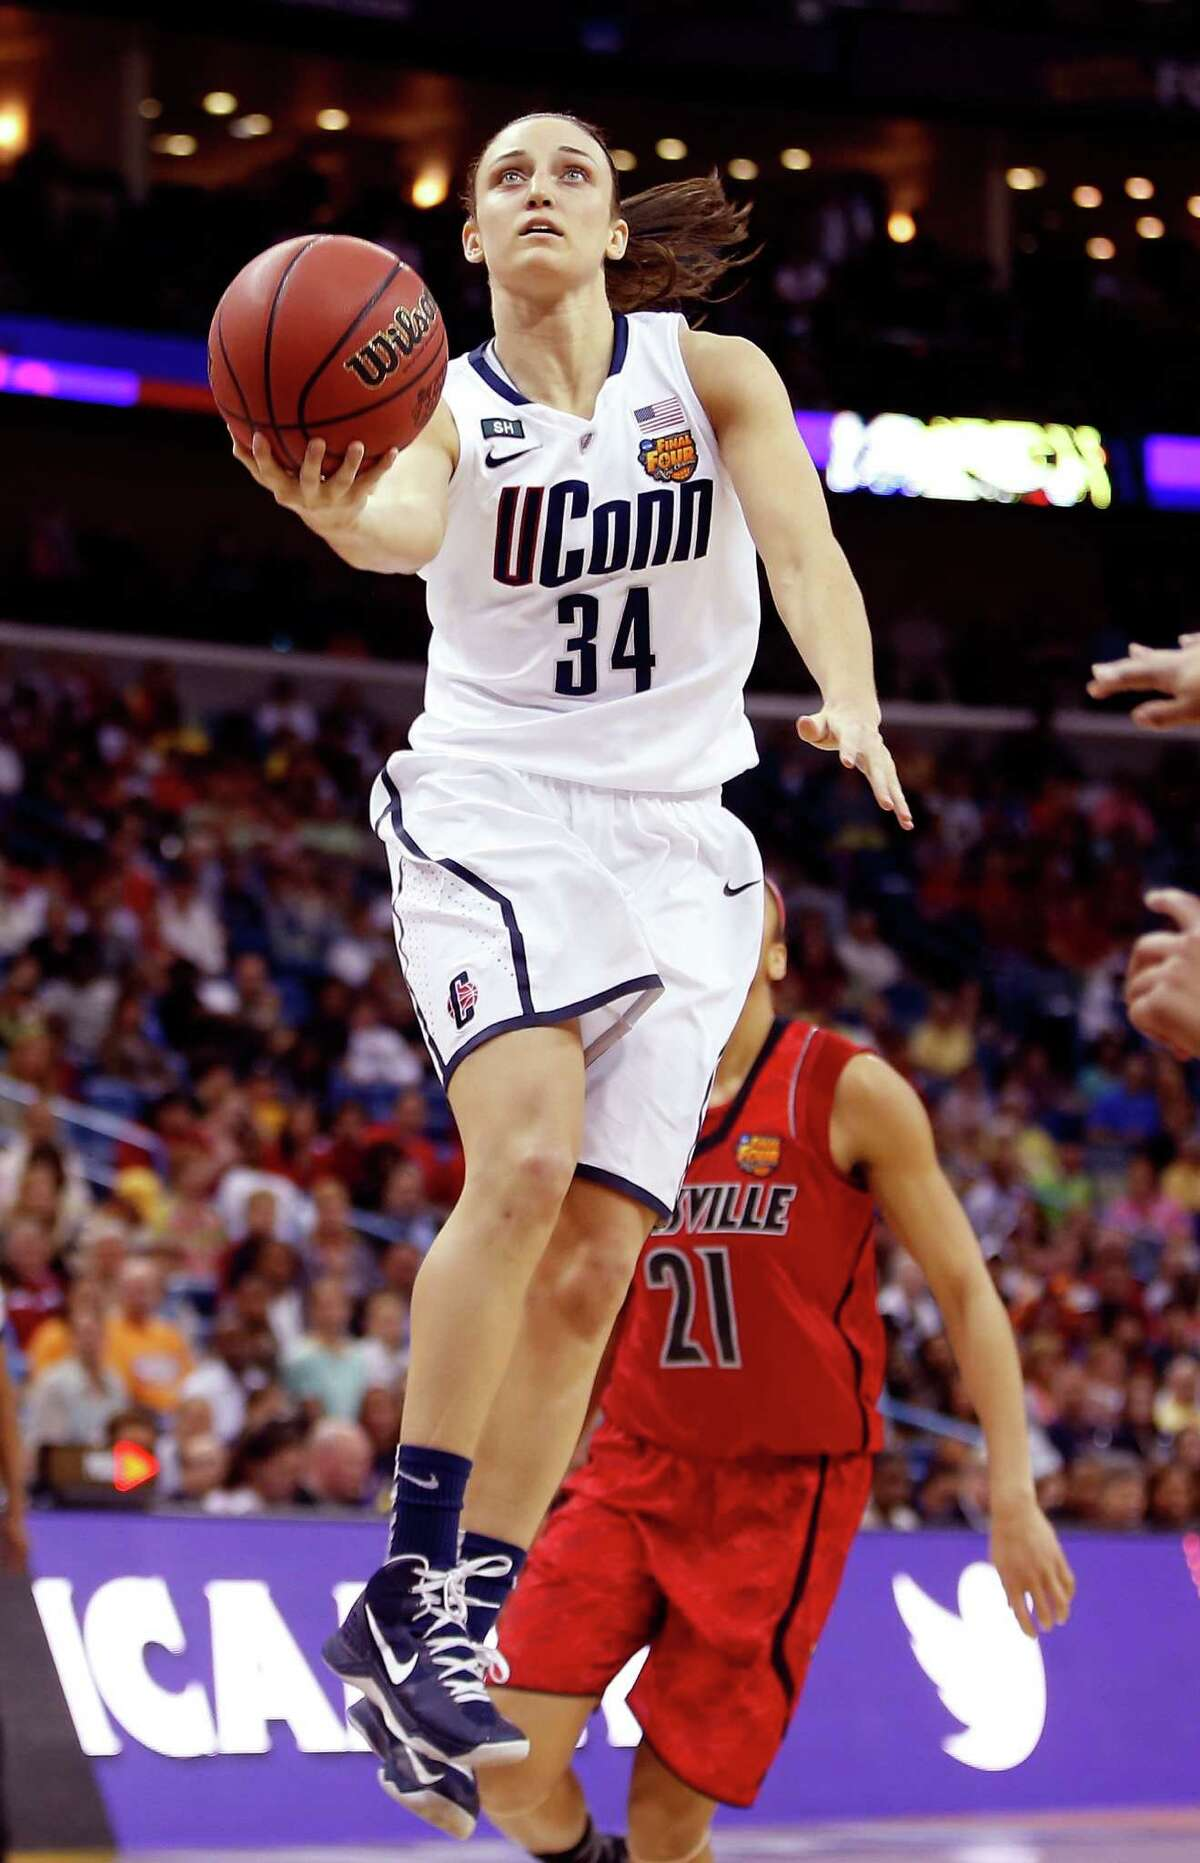 Fresh off a national title, UConn's Kelly Faris might be the Silver Stars' first pick.